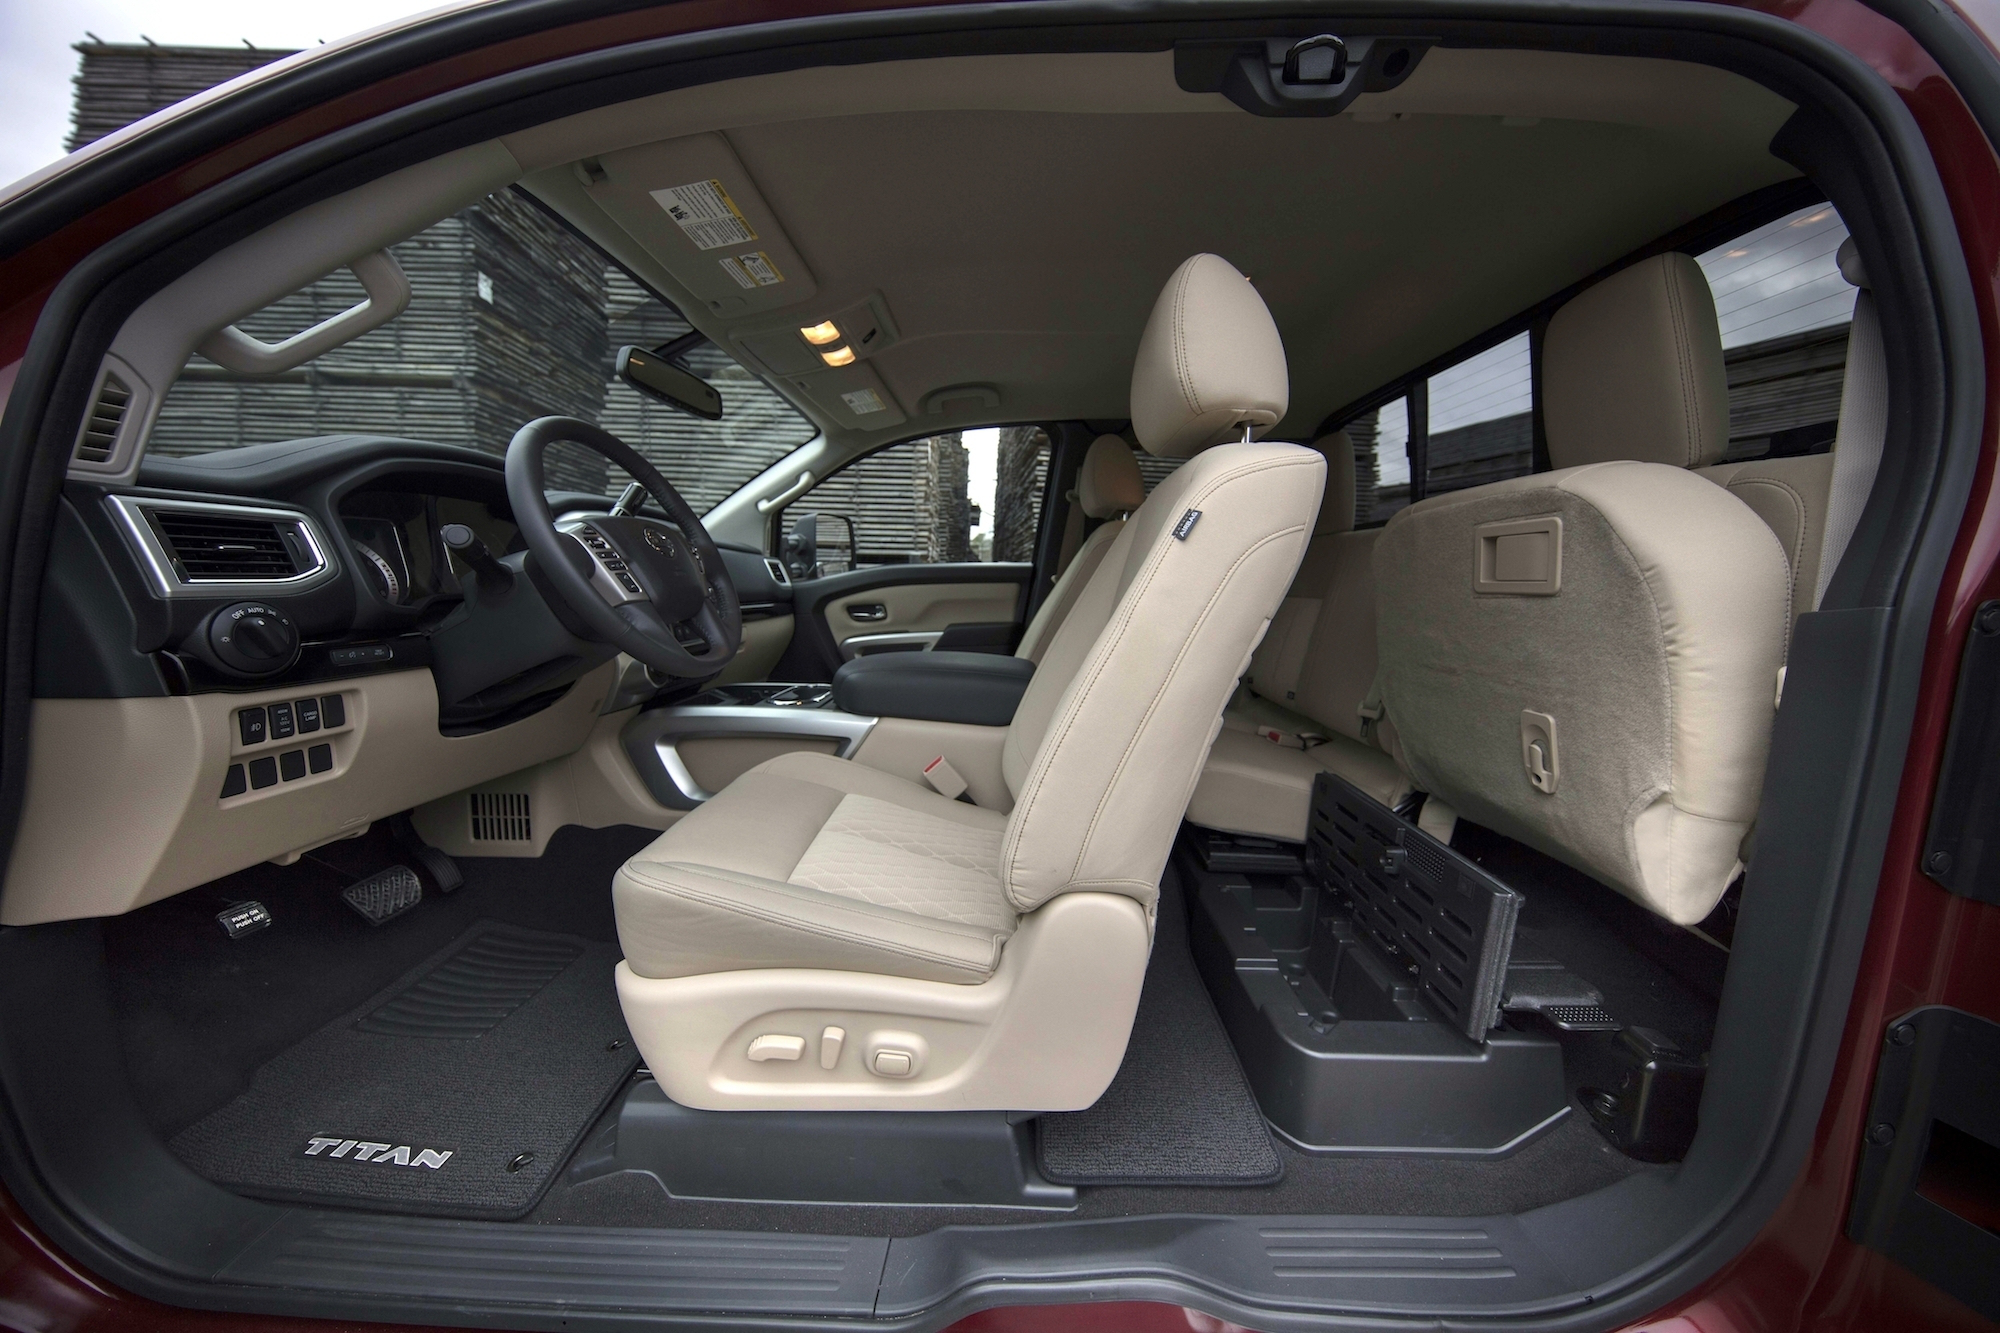 titan nissan cab king interior side xd crew sv seat rear front extended seats delete truck adds pickups cabs kings